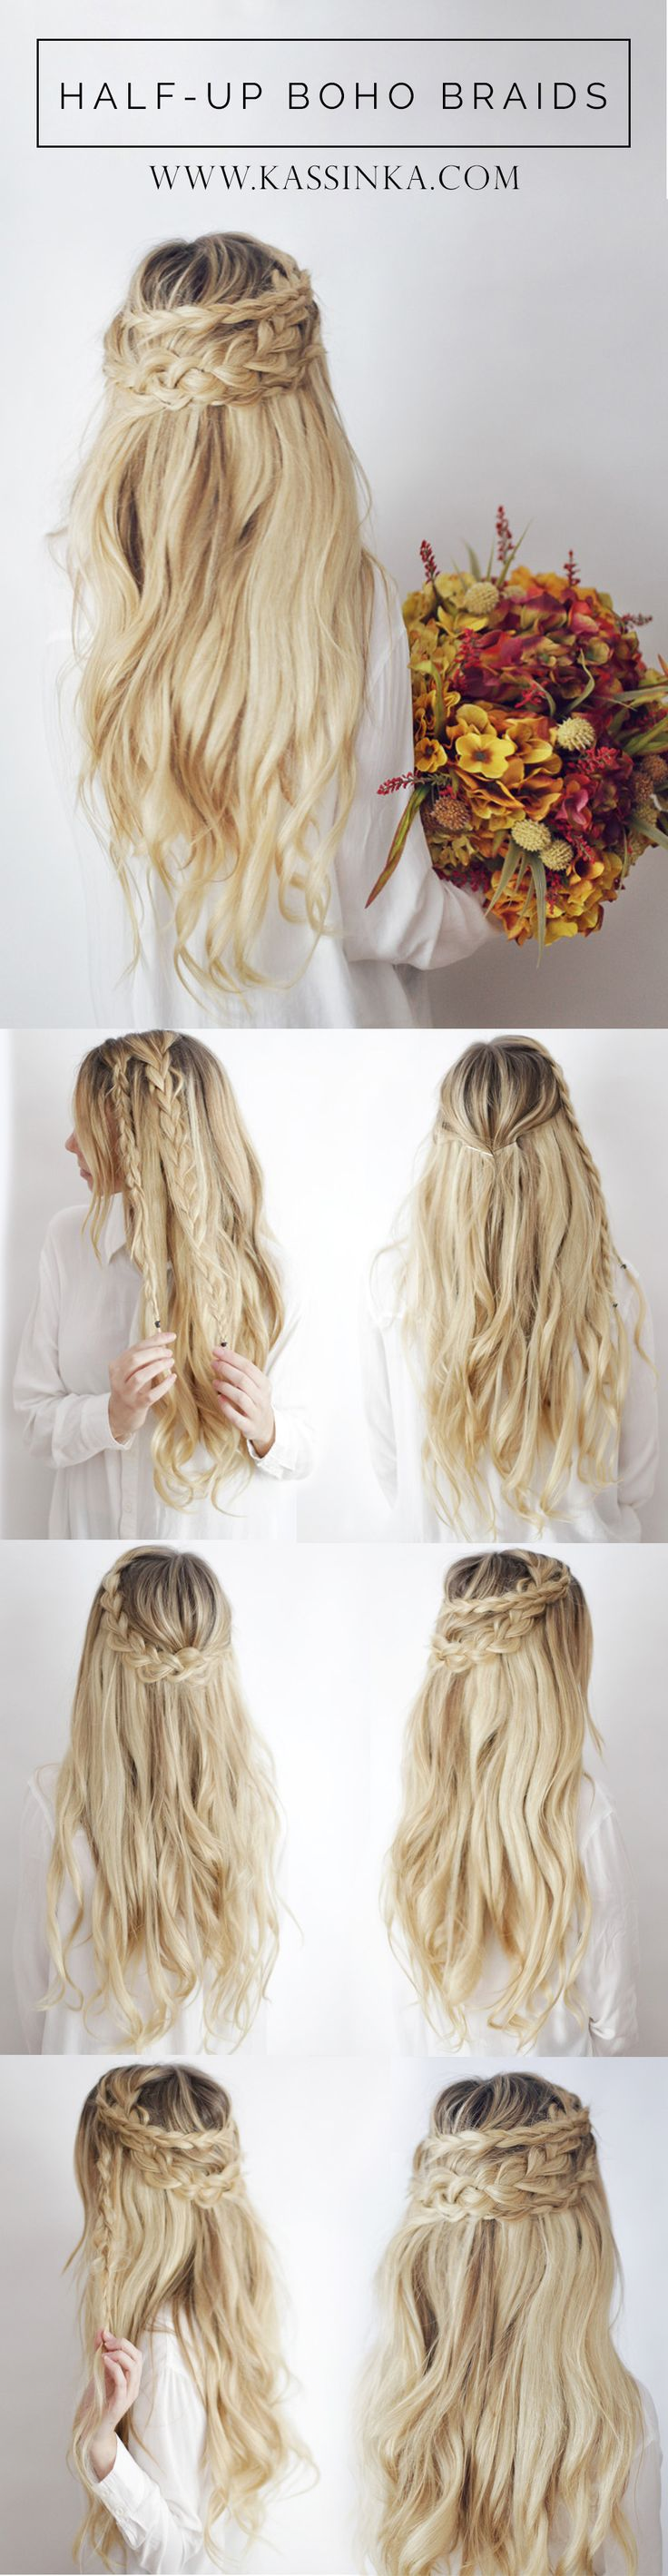 Hair Tutorial with @luxyhair on @kassinka